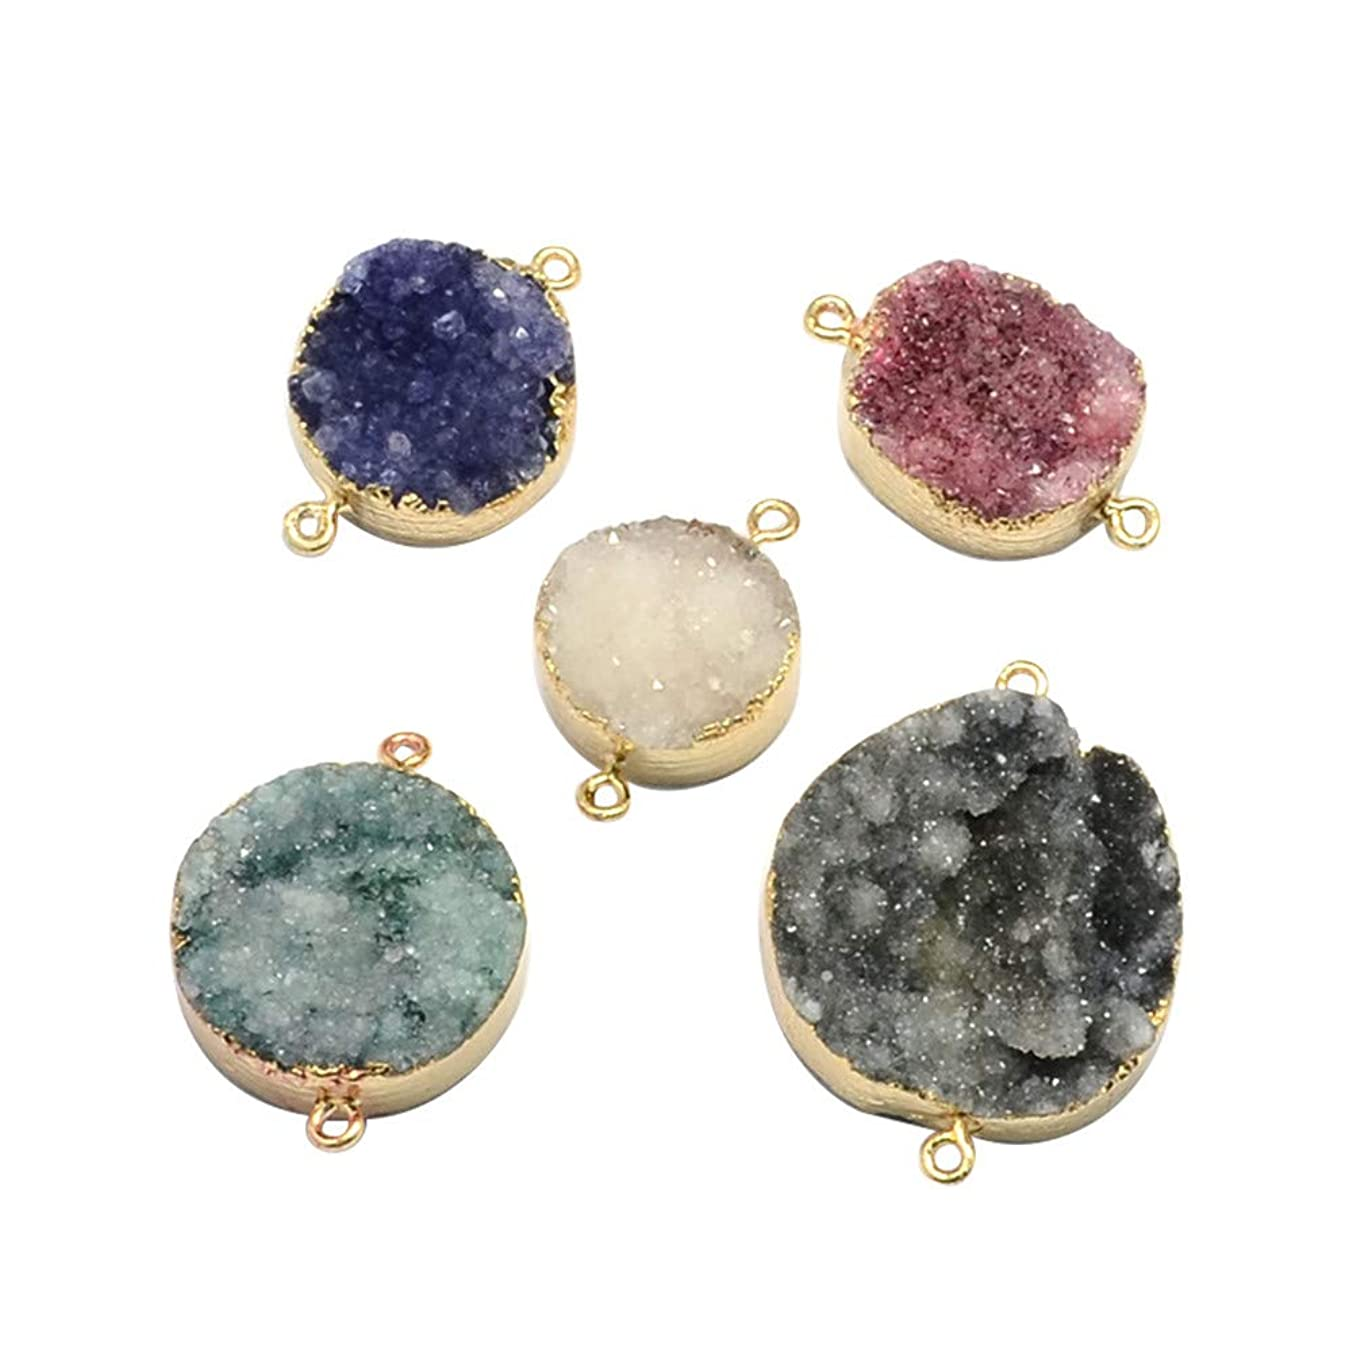 ARRICRAFT 5pcs Plated Natural Druzy Agate Links Necklace Pendants Gemstone Charms Connector for Necklace Bracelet Jewelry Making